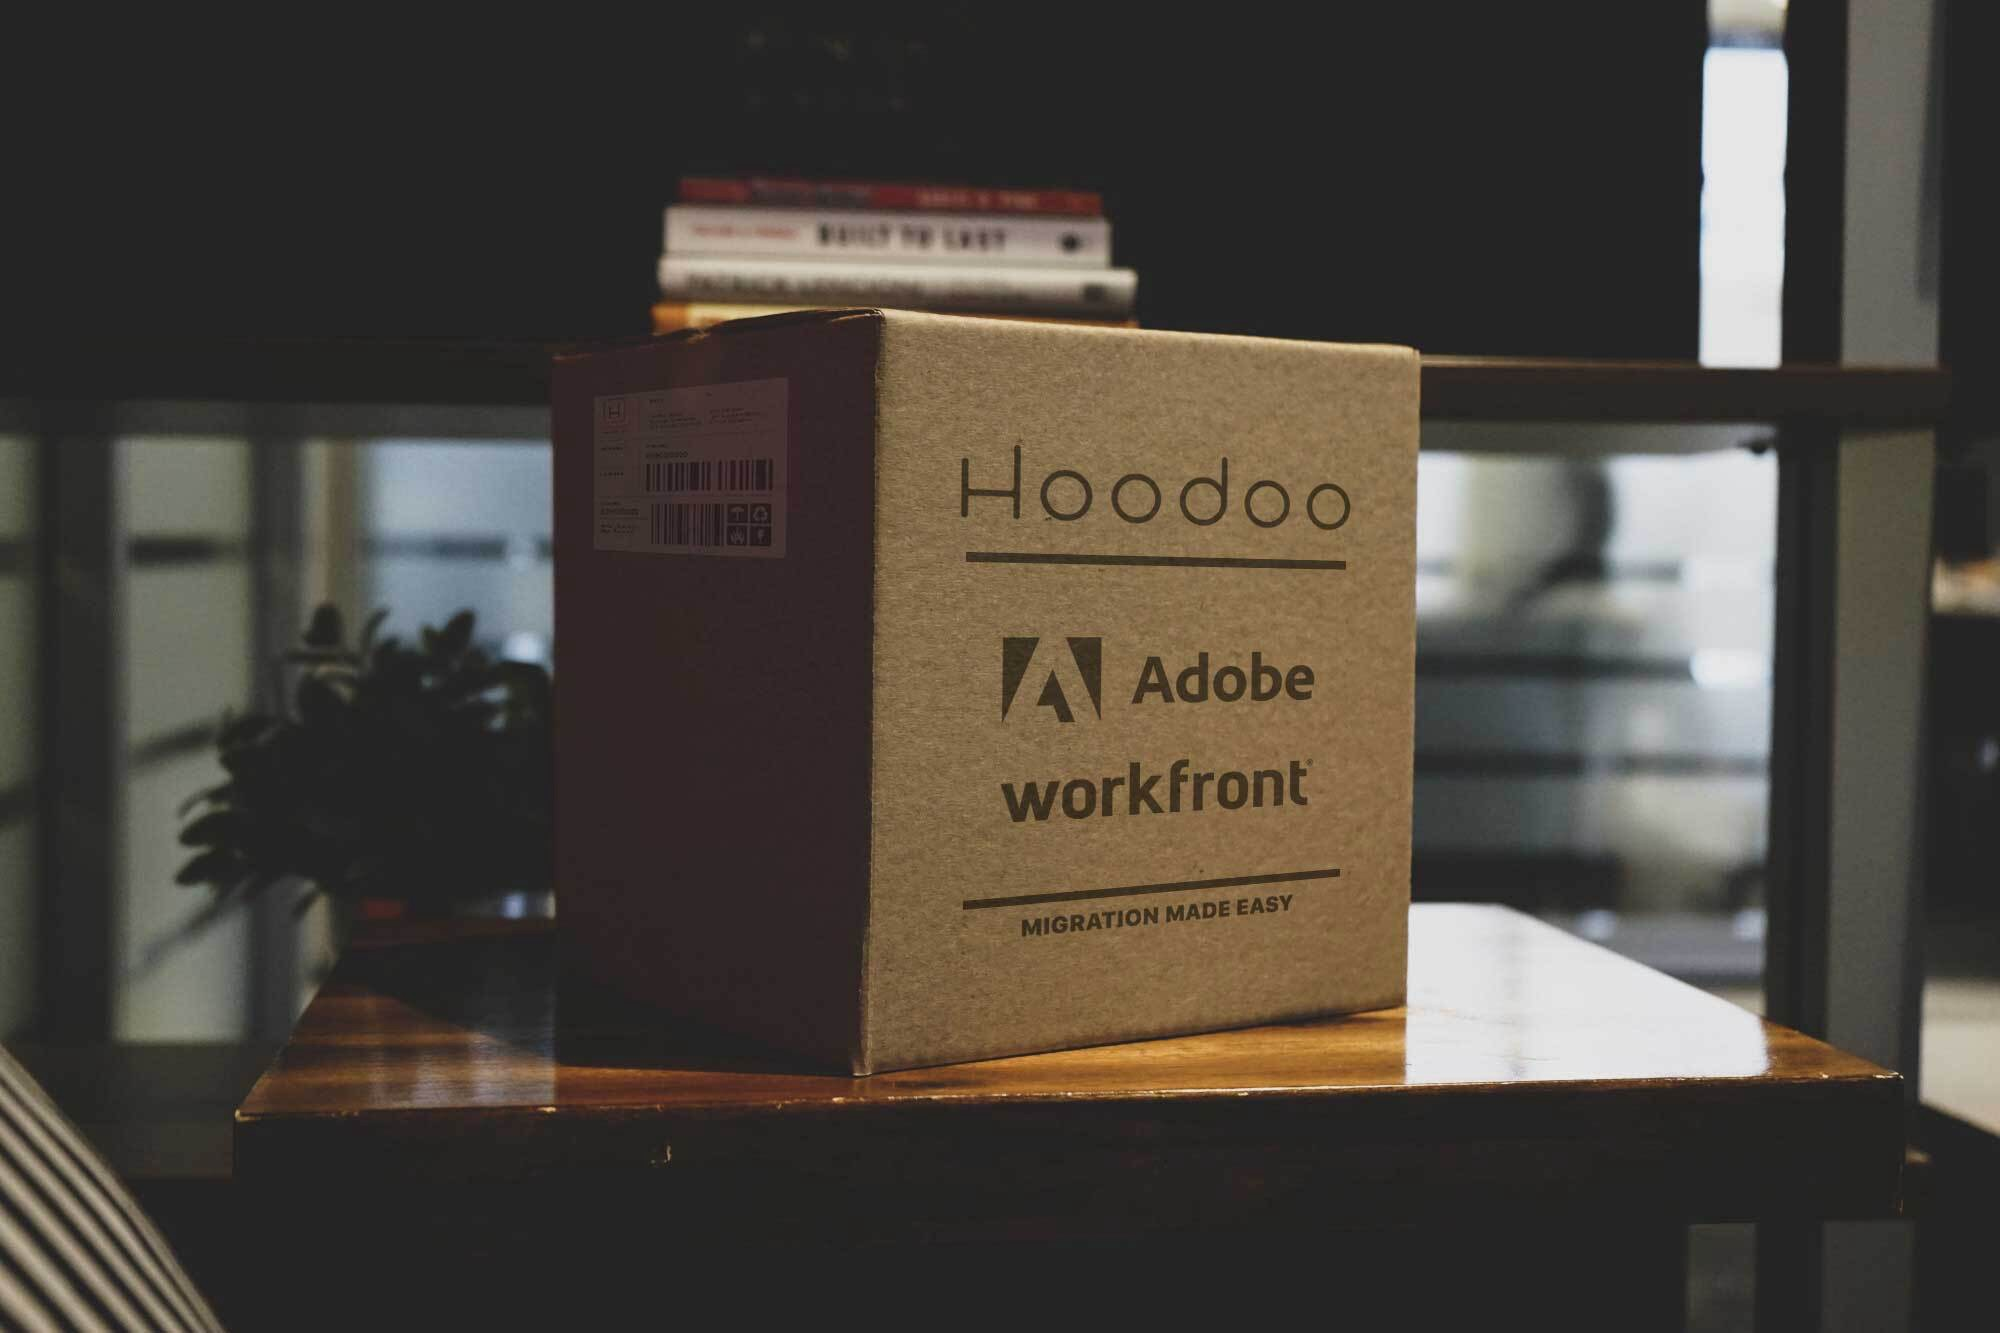 Hoodoo Packaged Migration Offering for Adobe and Workfront